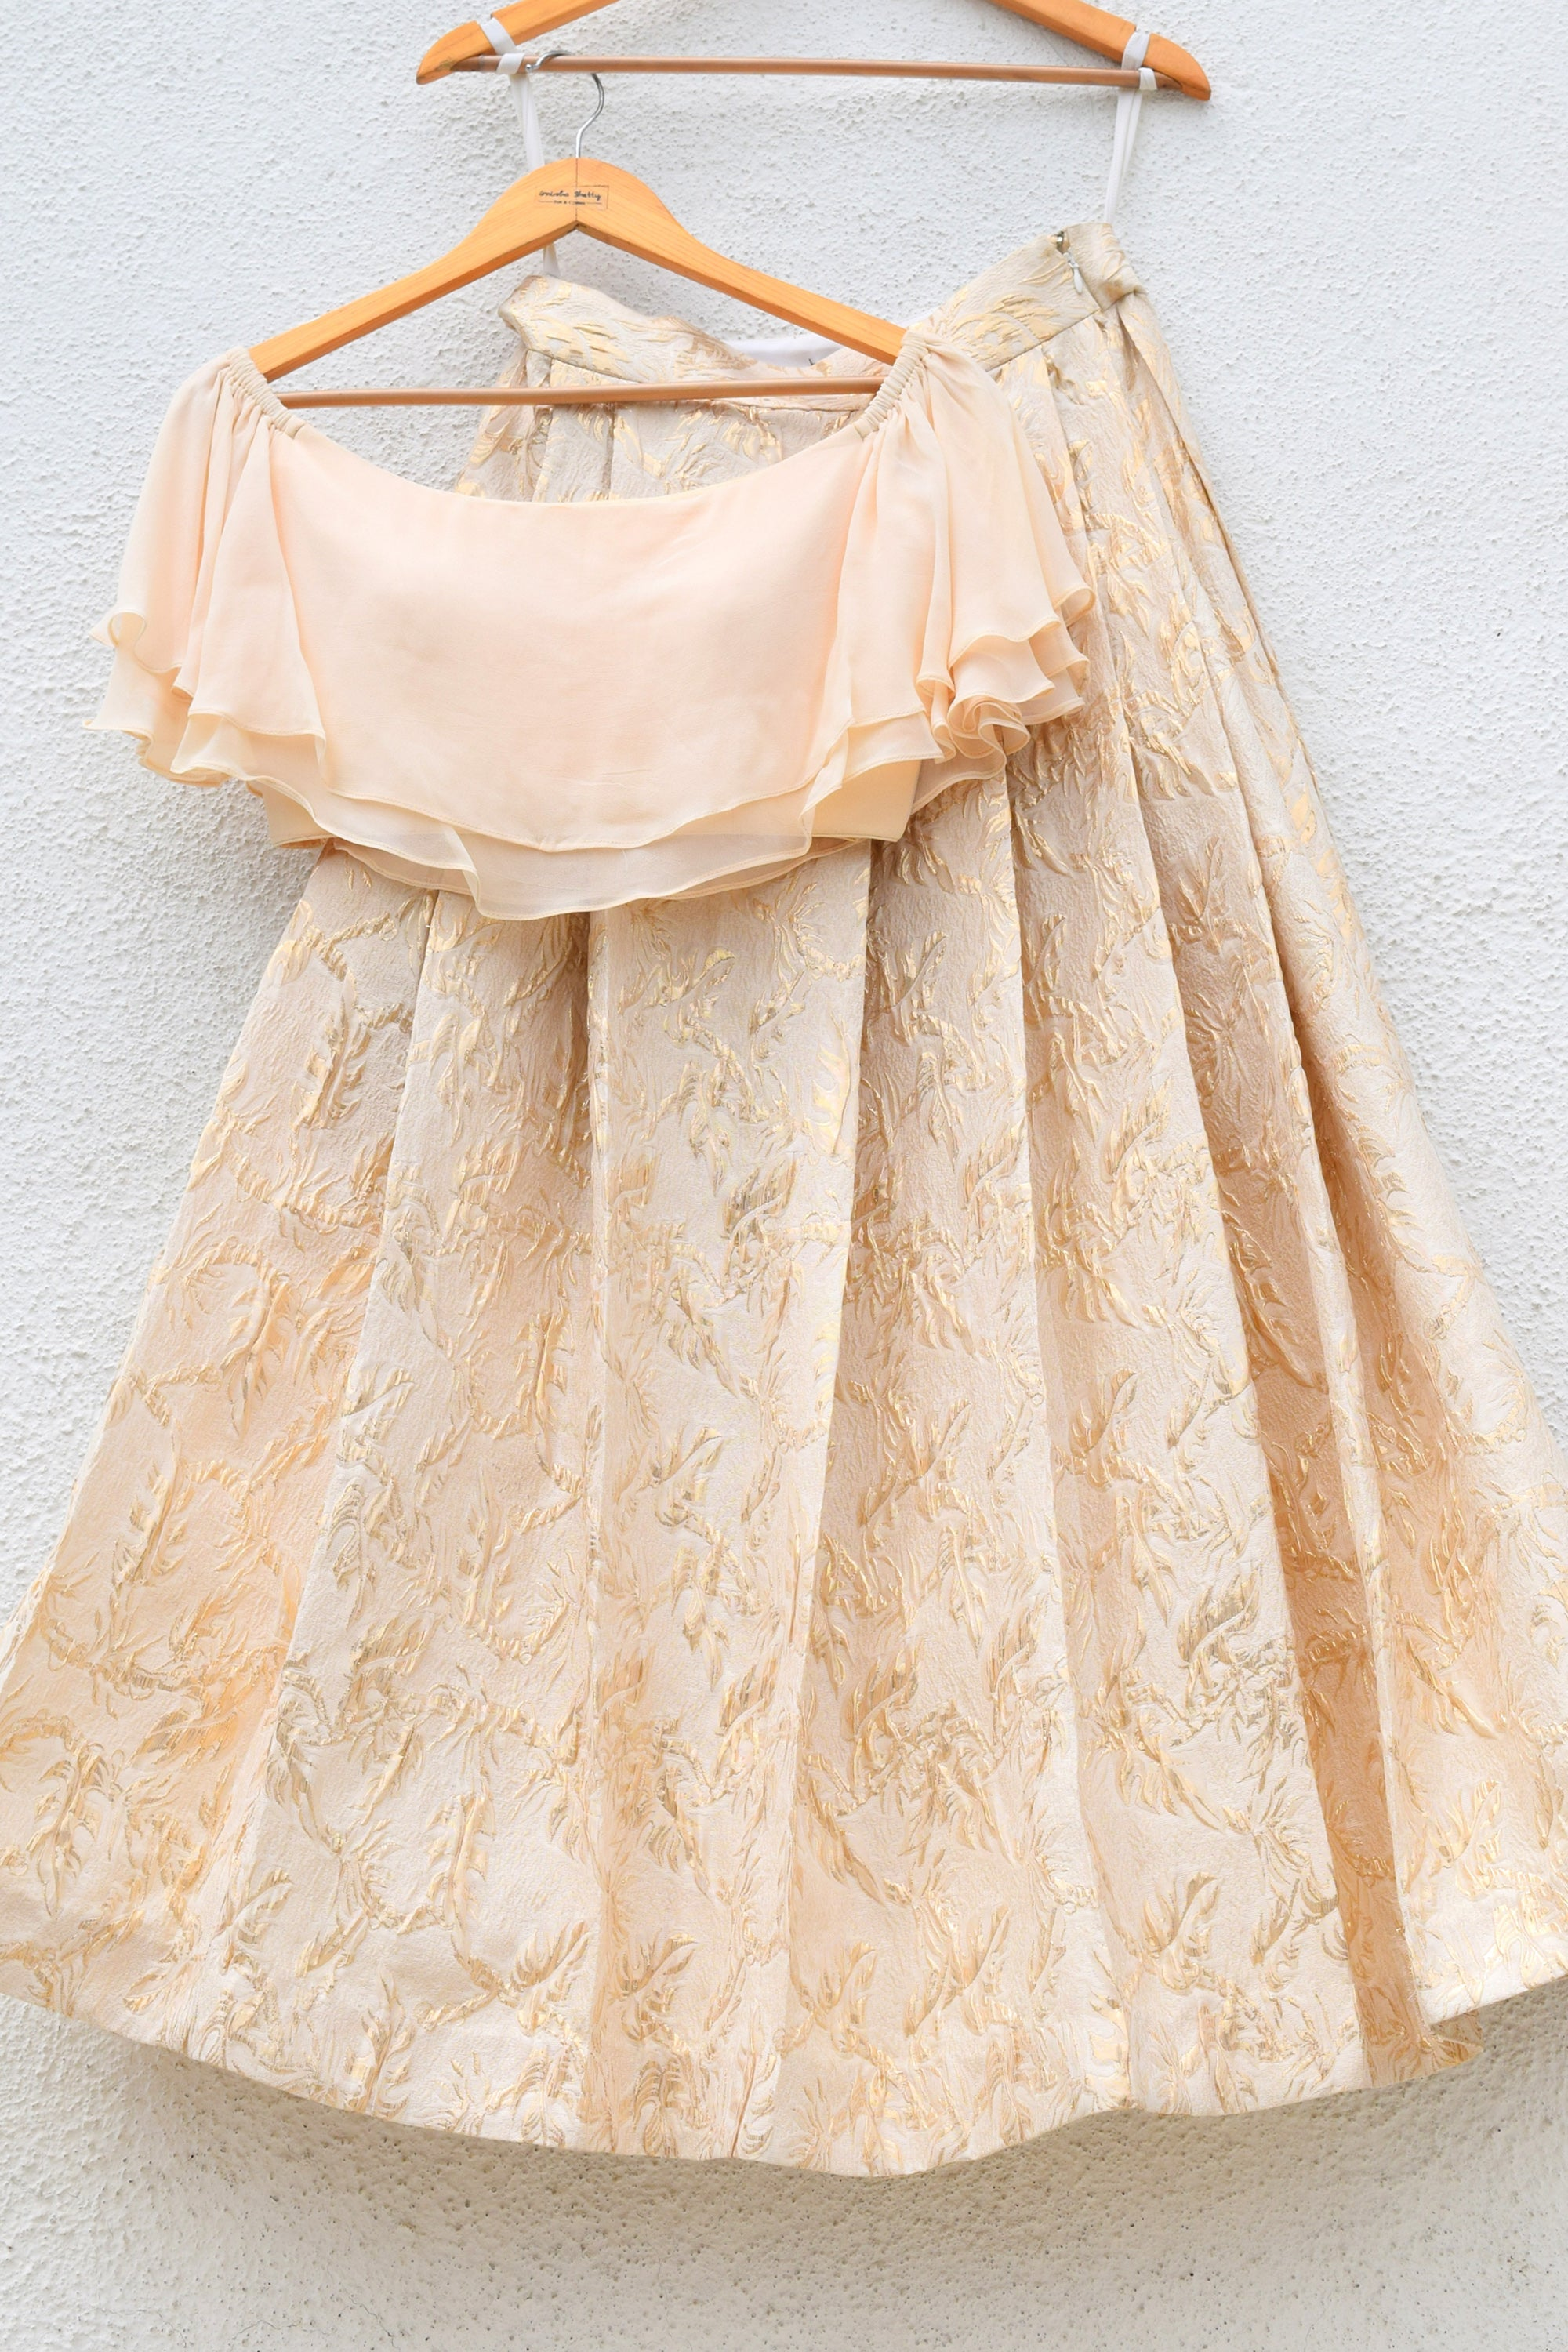 Jacquard Brocade Lehenga With Offshoulder Cascade Frills Crop Top